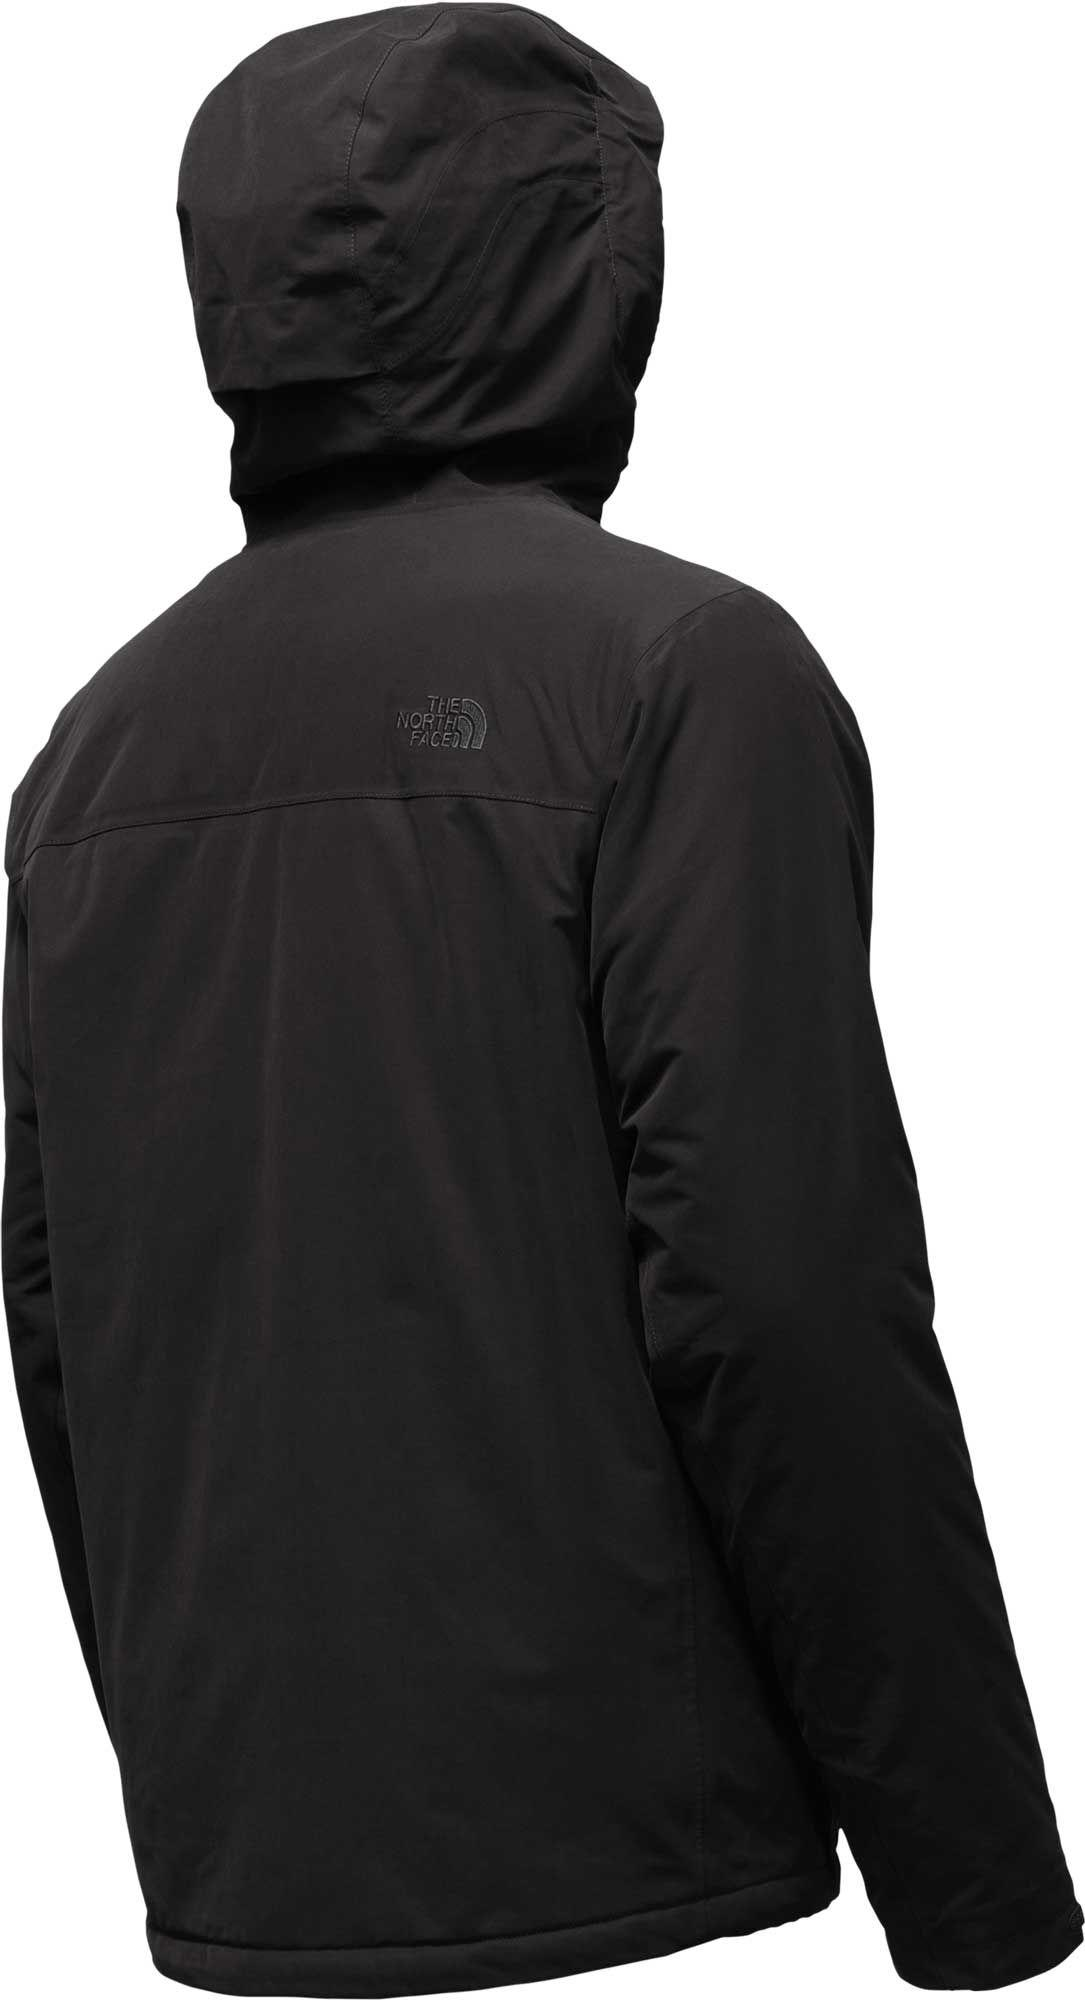 ... shop lyst the north face canyonlands triclimate 3 in 1 jacket past  dae49 bd5db 30a3c2500